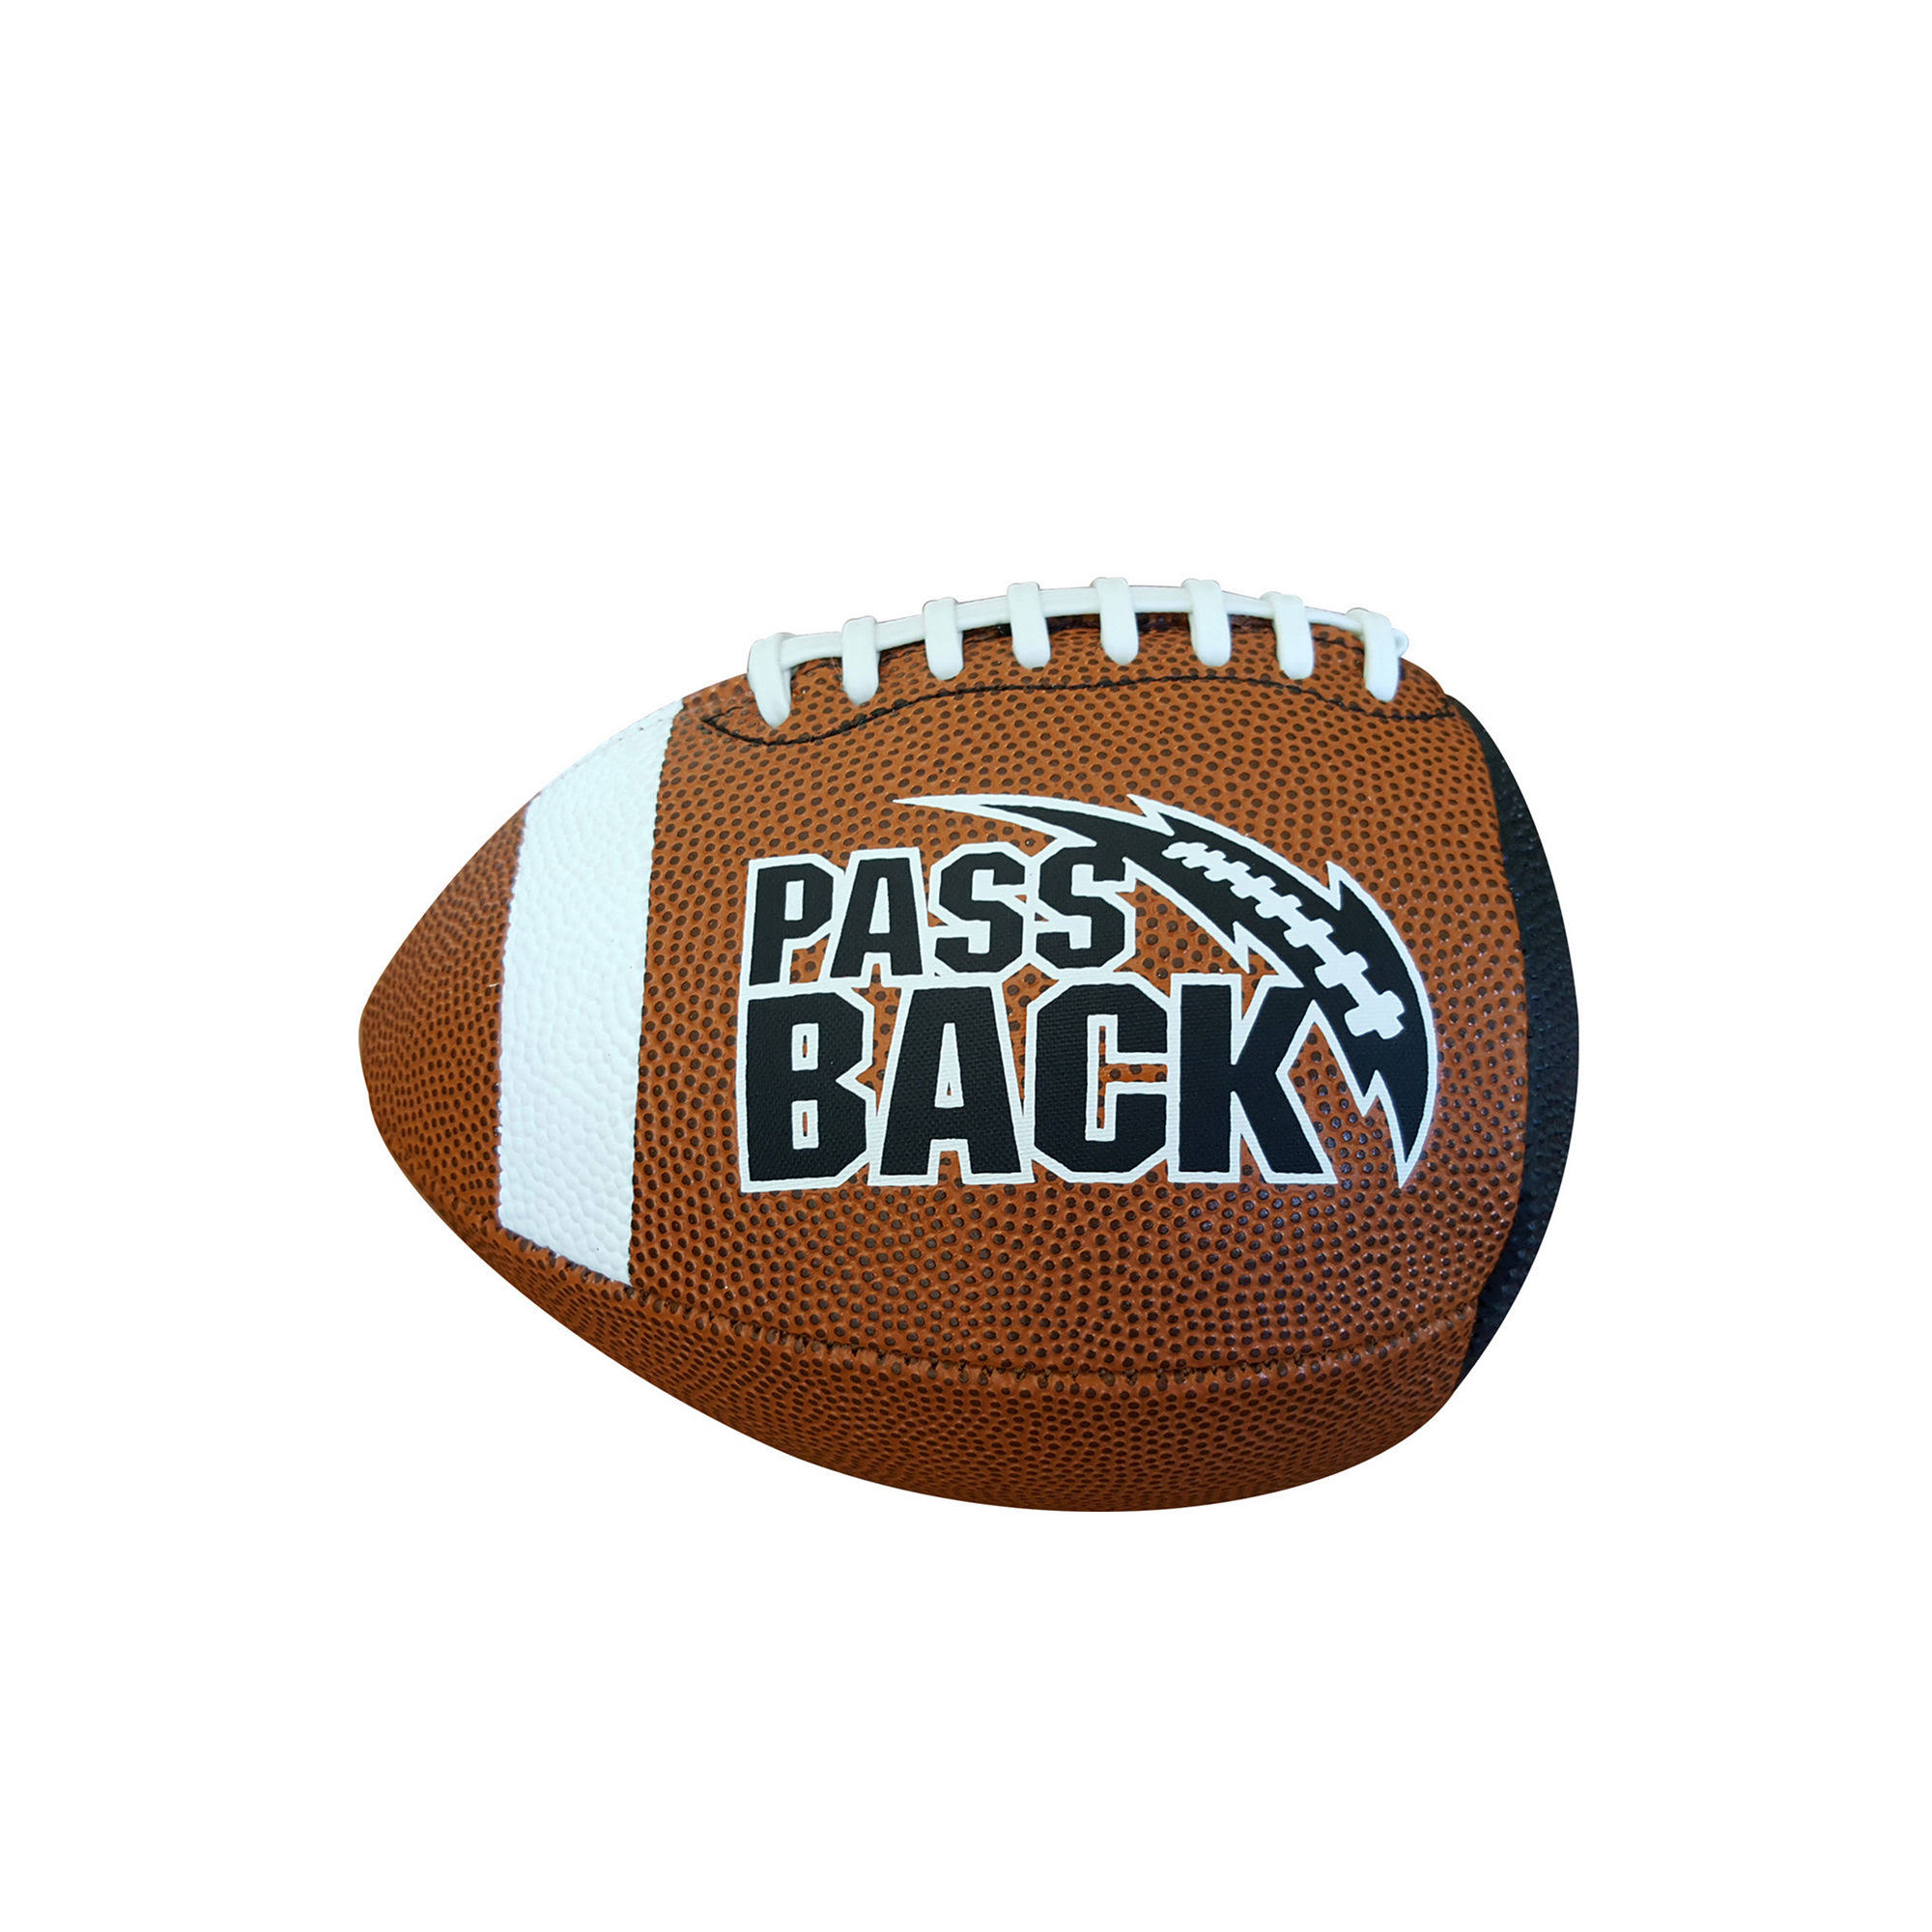 Passback Sports Kids Football